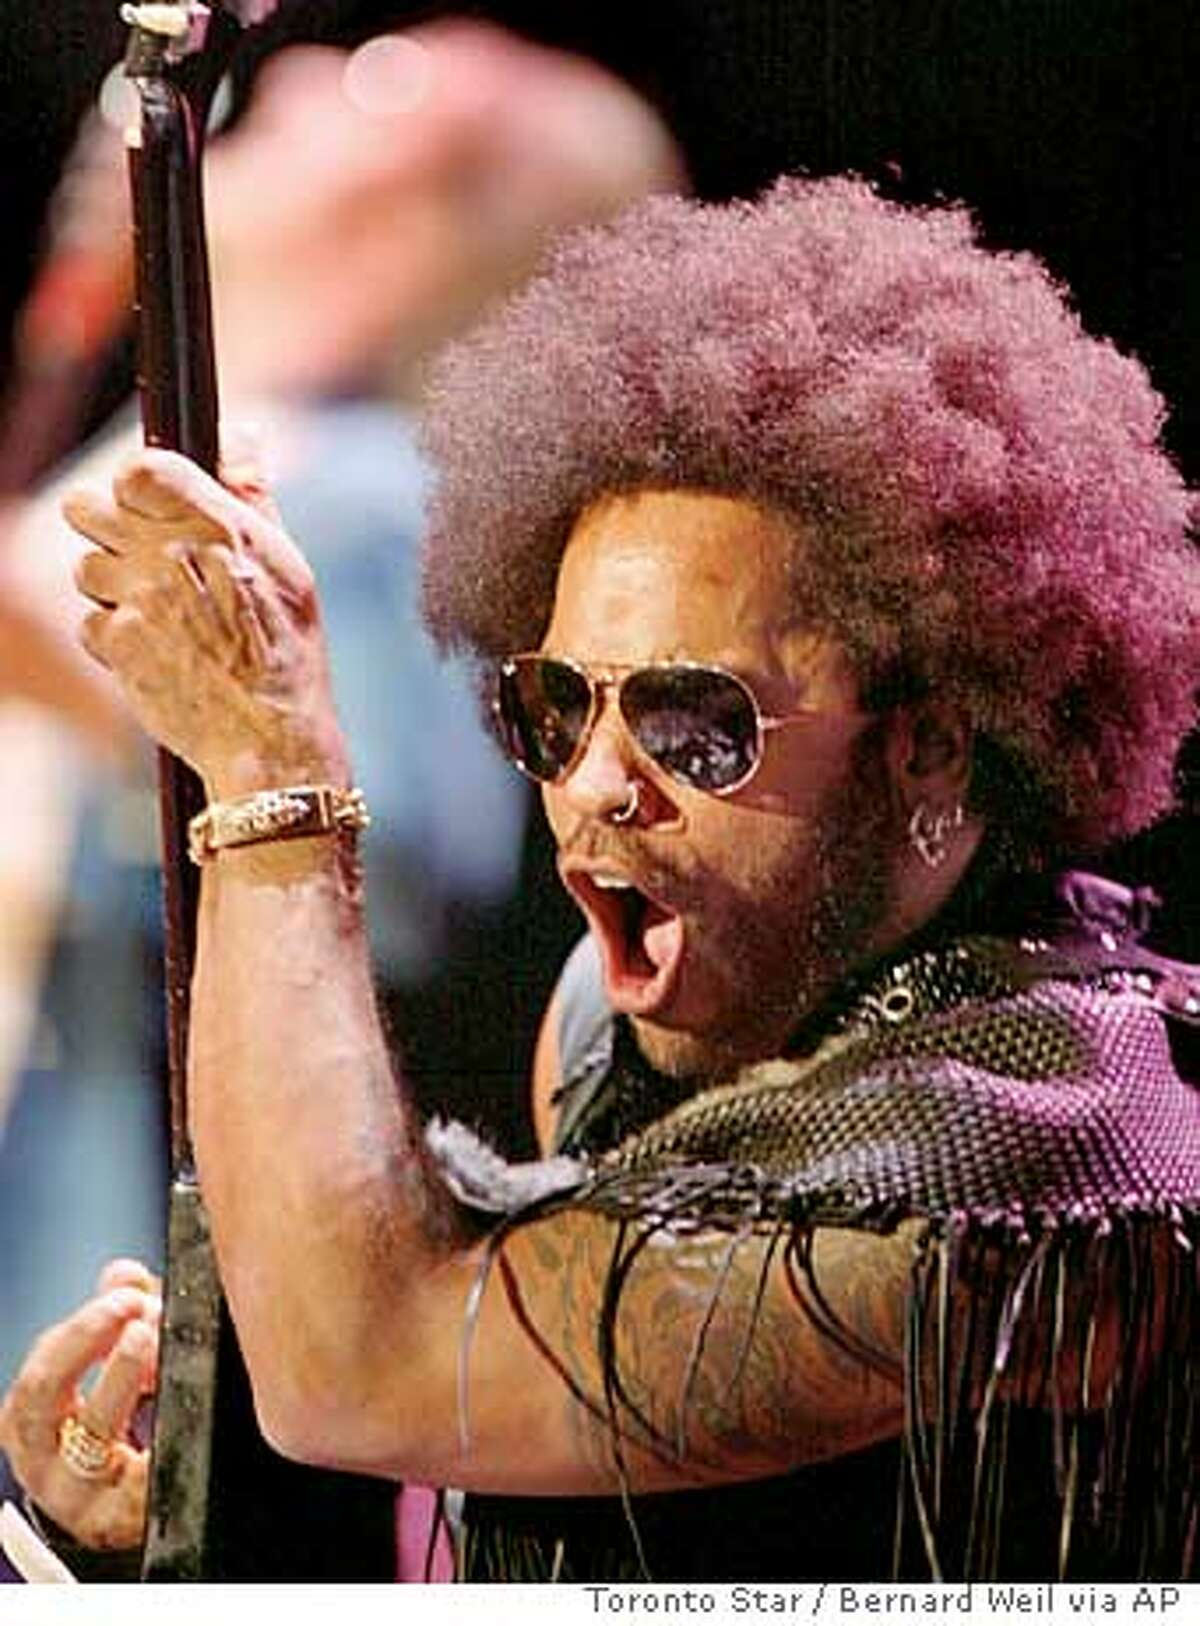 THIS IS A HANDOUT IMAGE. PLEASE VERIFY RIGHTS. Lenny Kravitz performs at Molson Amphitheater, in Toronto, Canada on Sunday Aug. 4, 2002. (AP Photo/CP, Toronto Star, Bernard Weil)